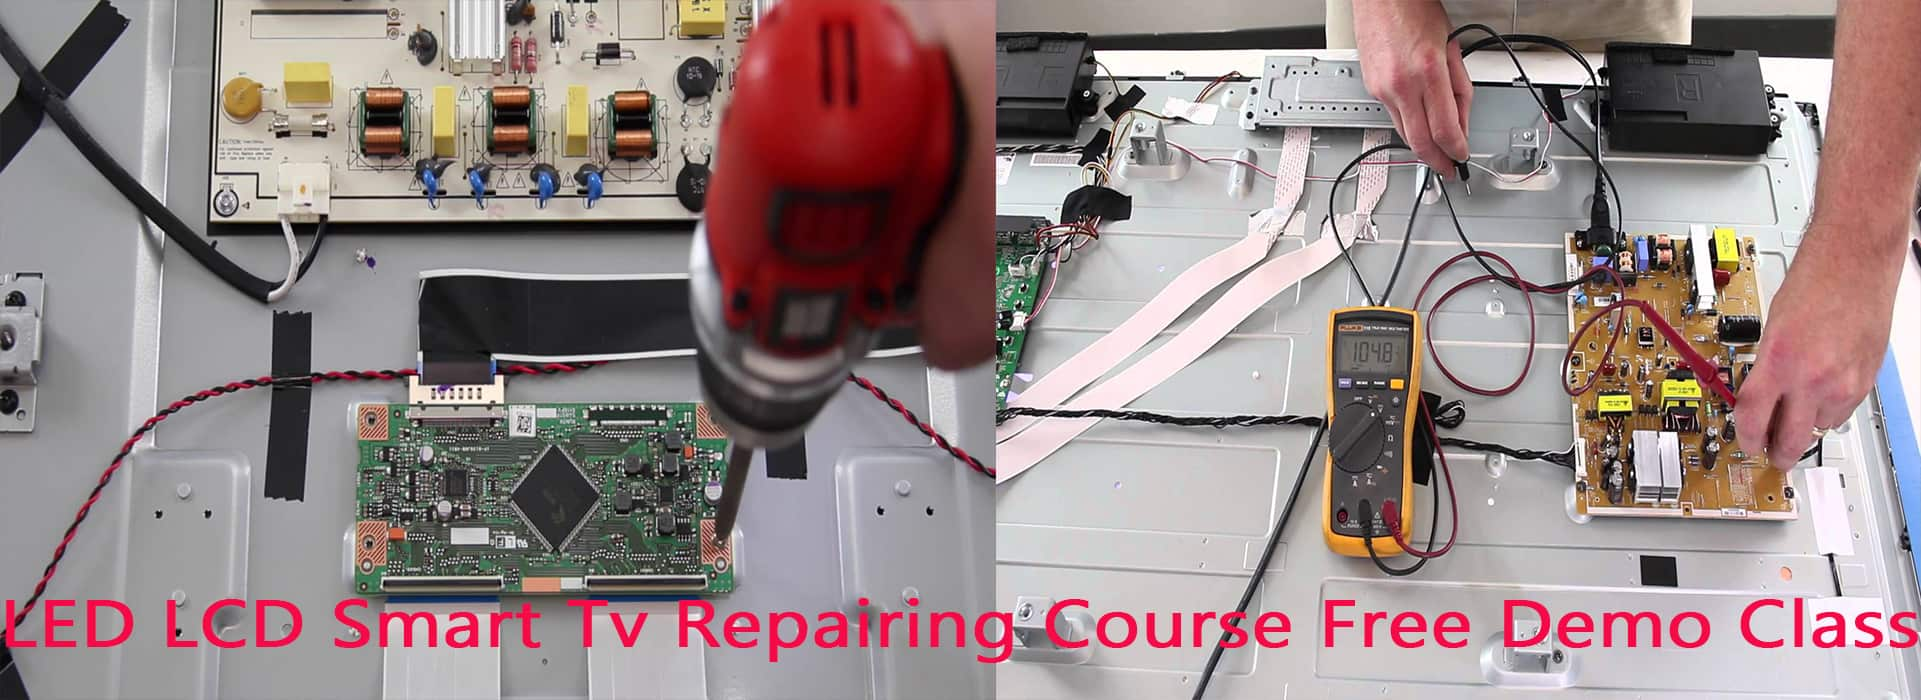 Led Lcd Smart Tv Repairing Course